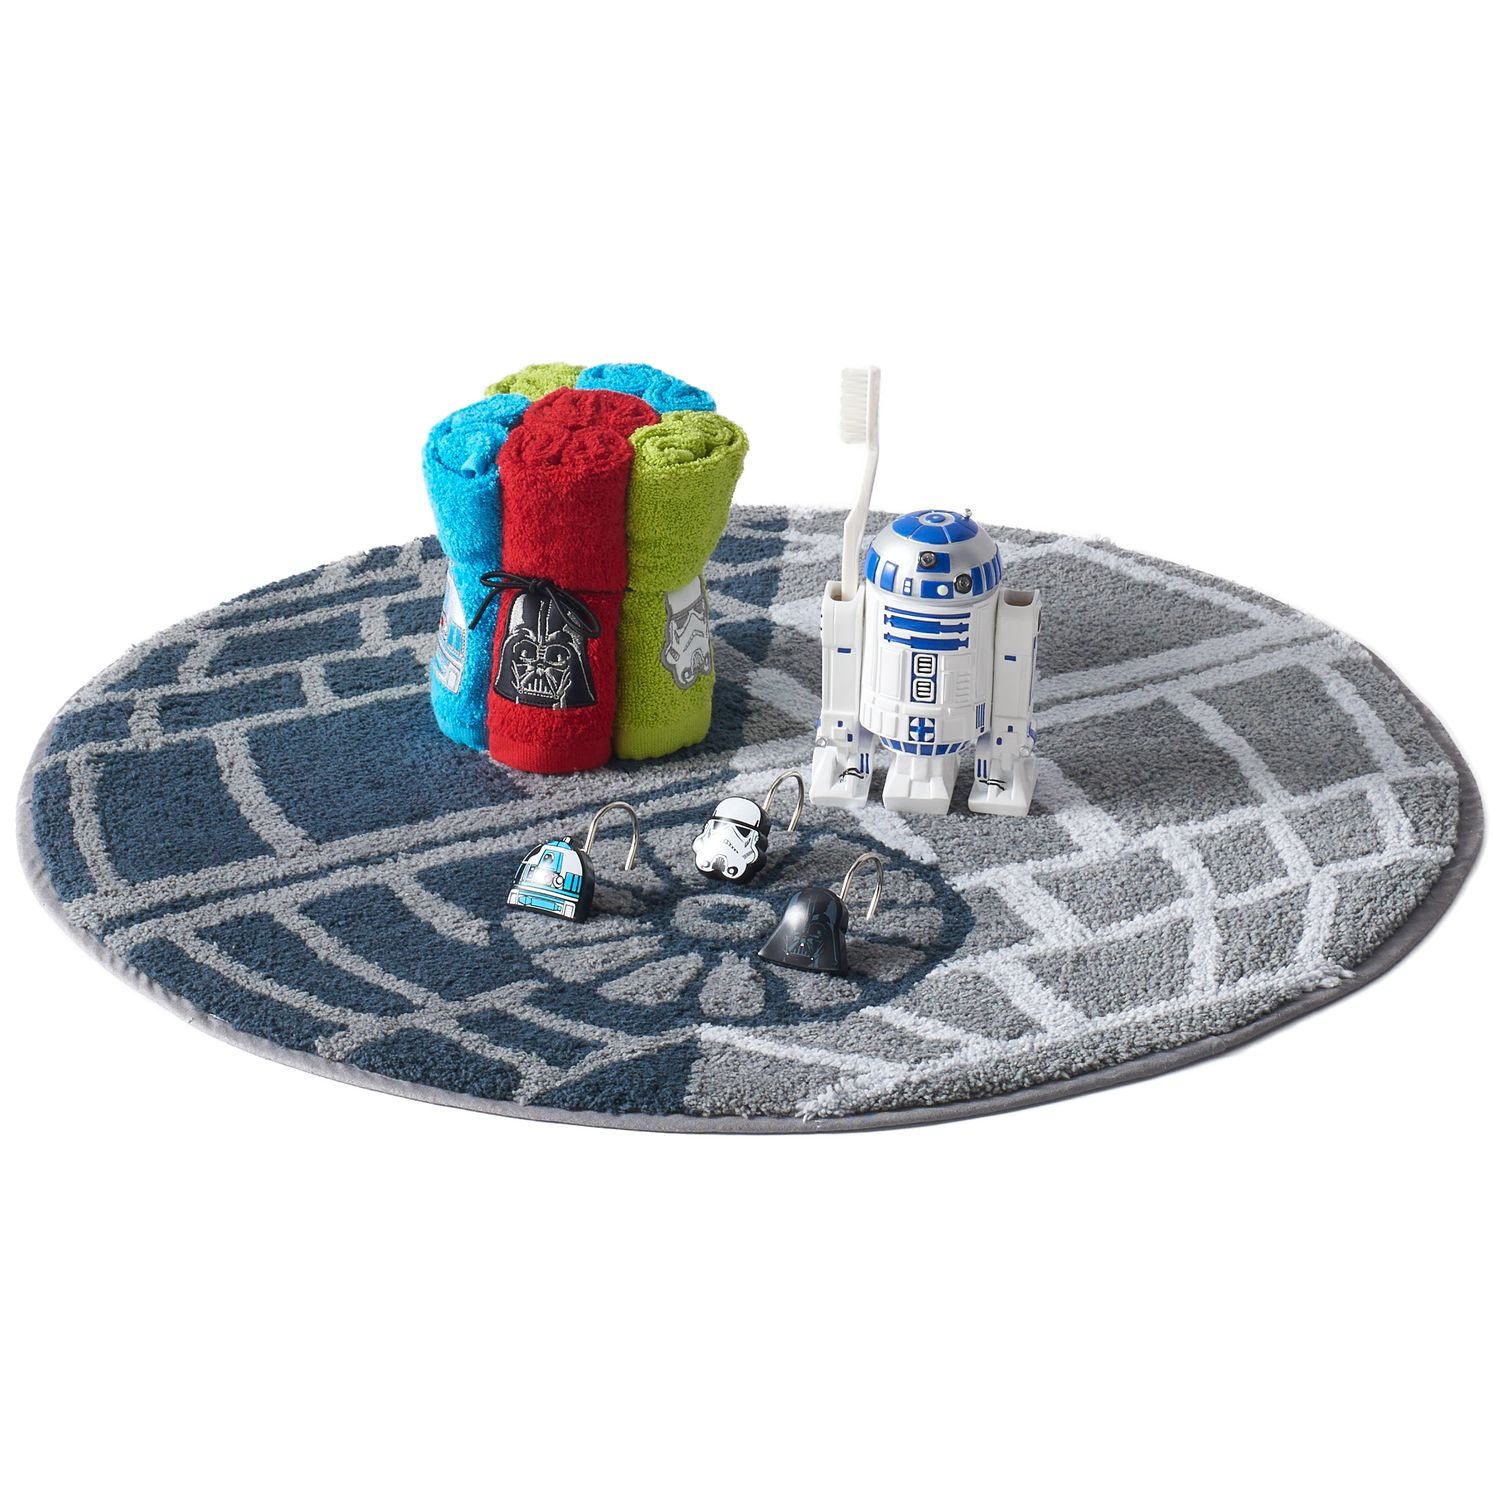 star wars episode vii the force awakens bath accessories collection